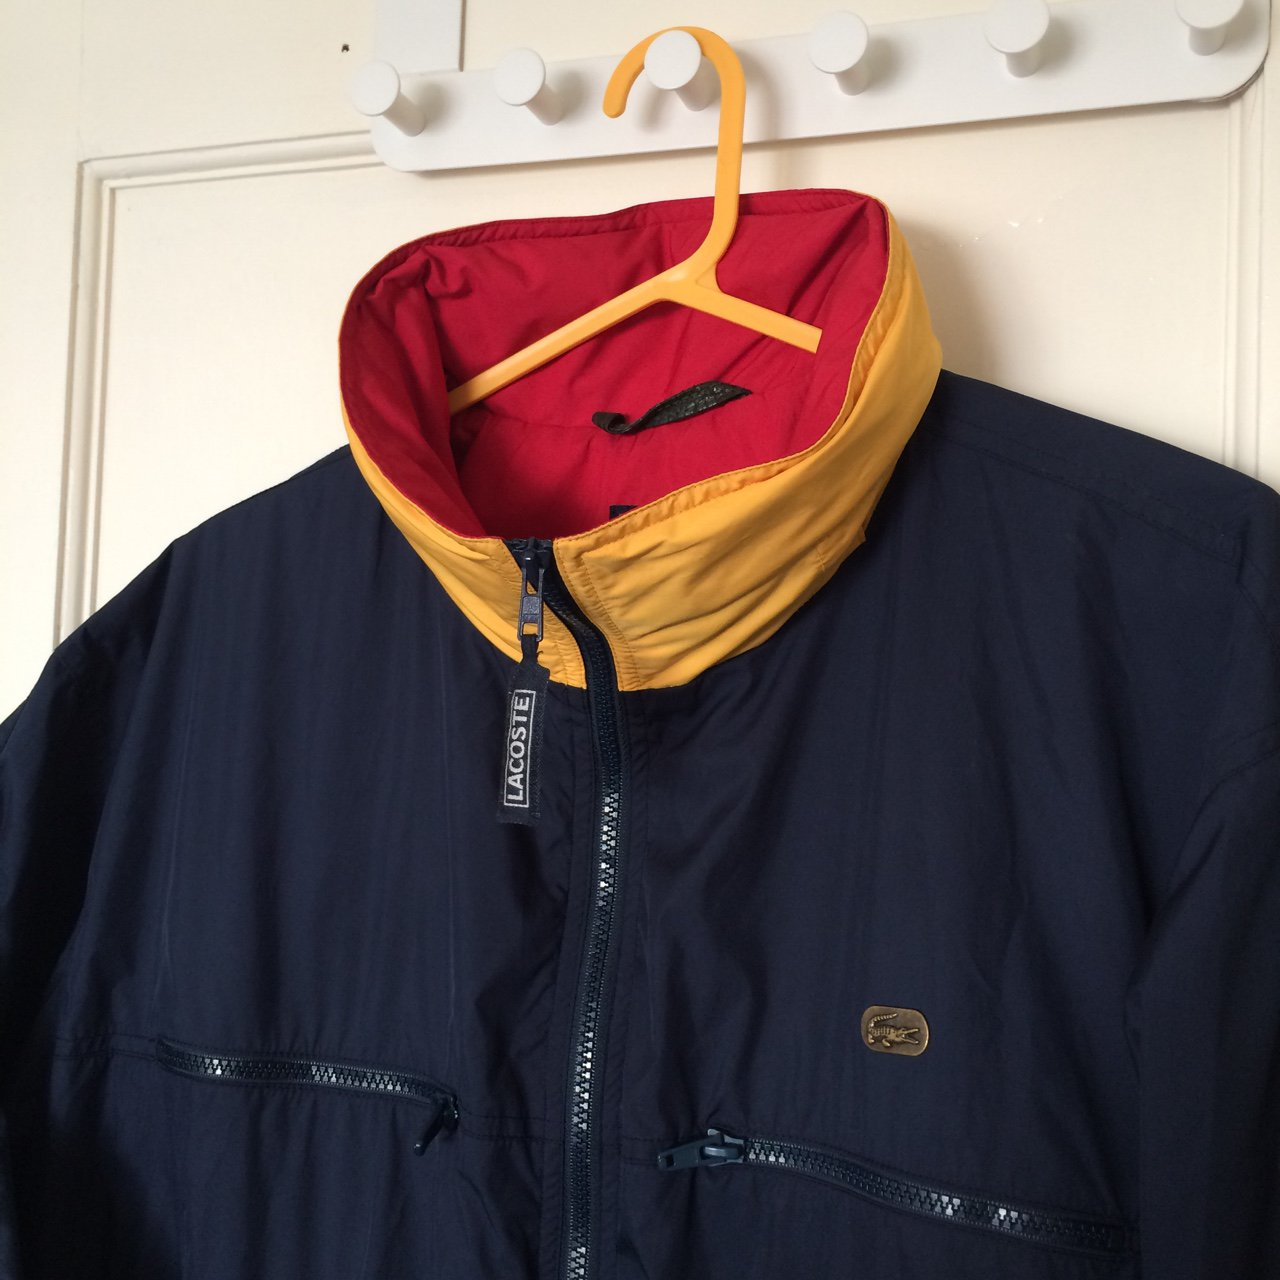 f0af872fbcc2 LACOSTE lined windbreaker jacket coat. Navy   red   yellow. - Depop